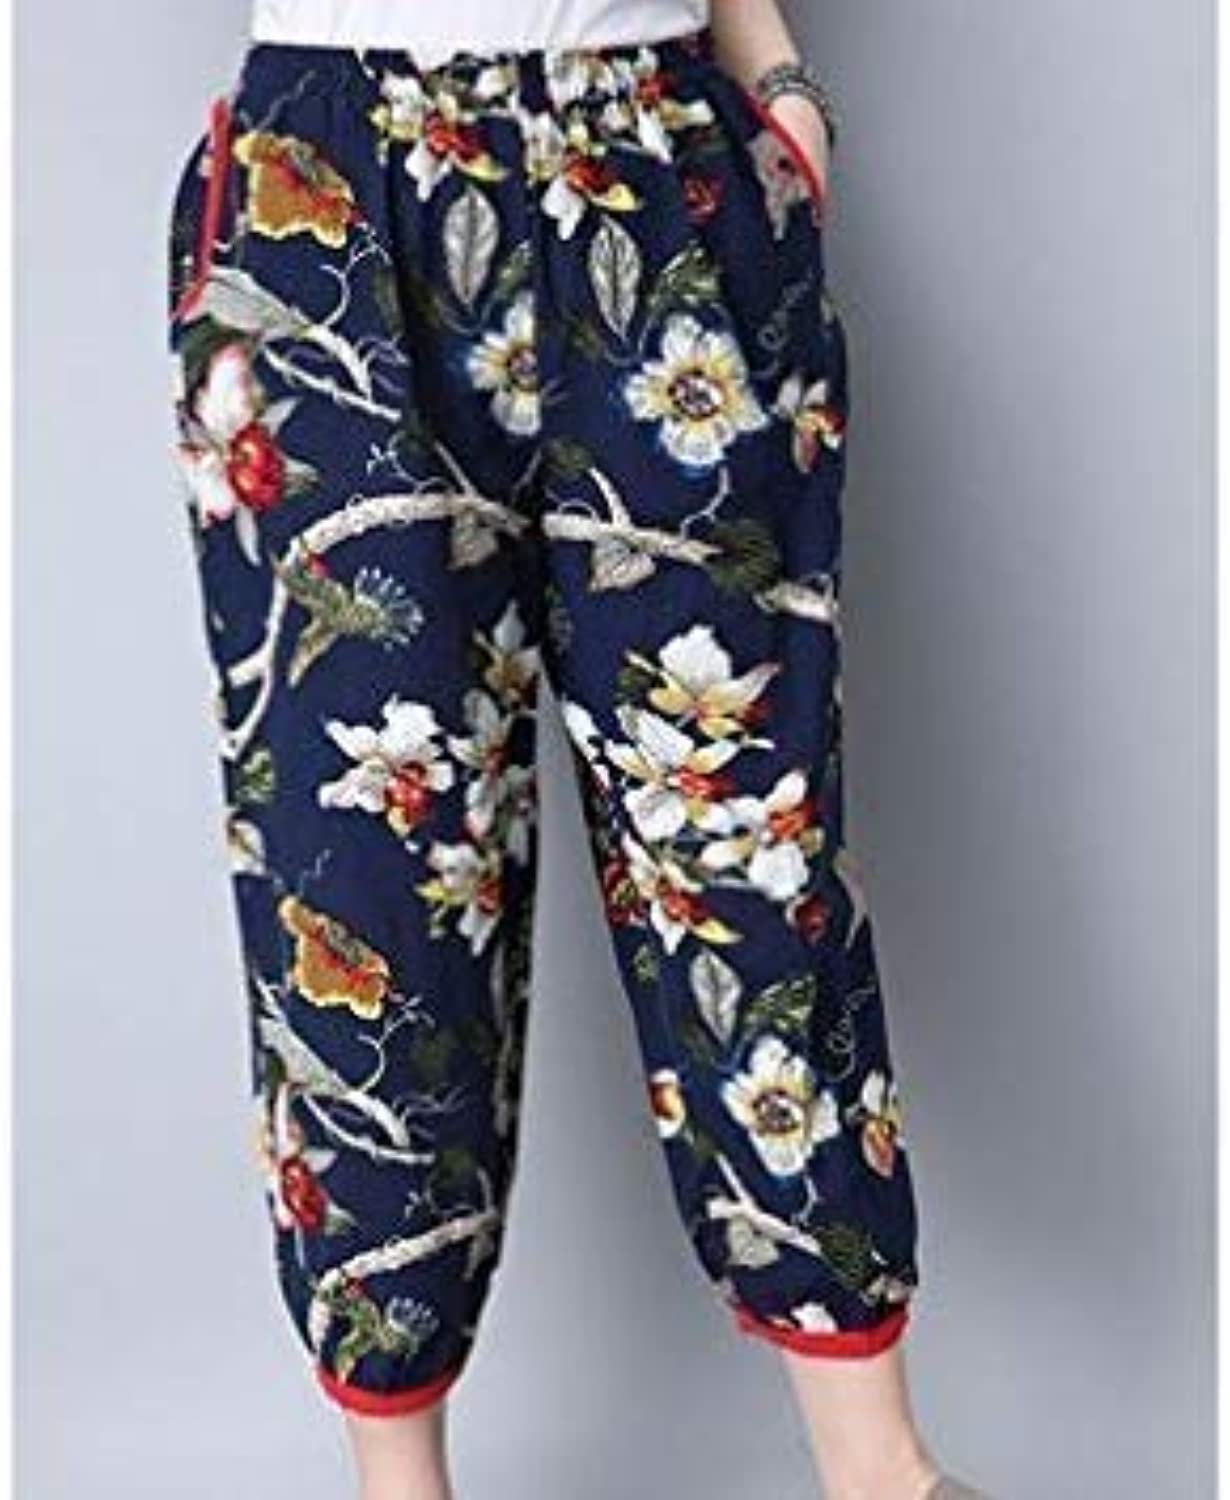 Women Yoga Pants Original Oversized Loose Elastic Printing Waist Cotton Linen Bloomers Nepal Style - XL Navy